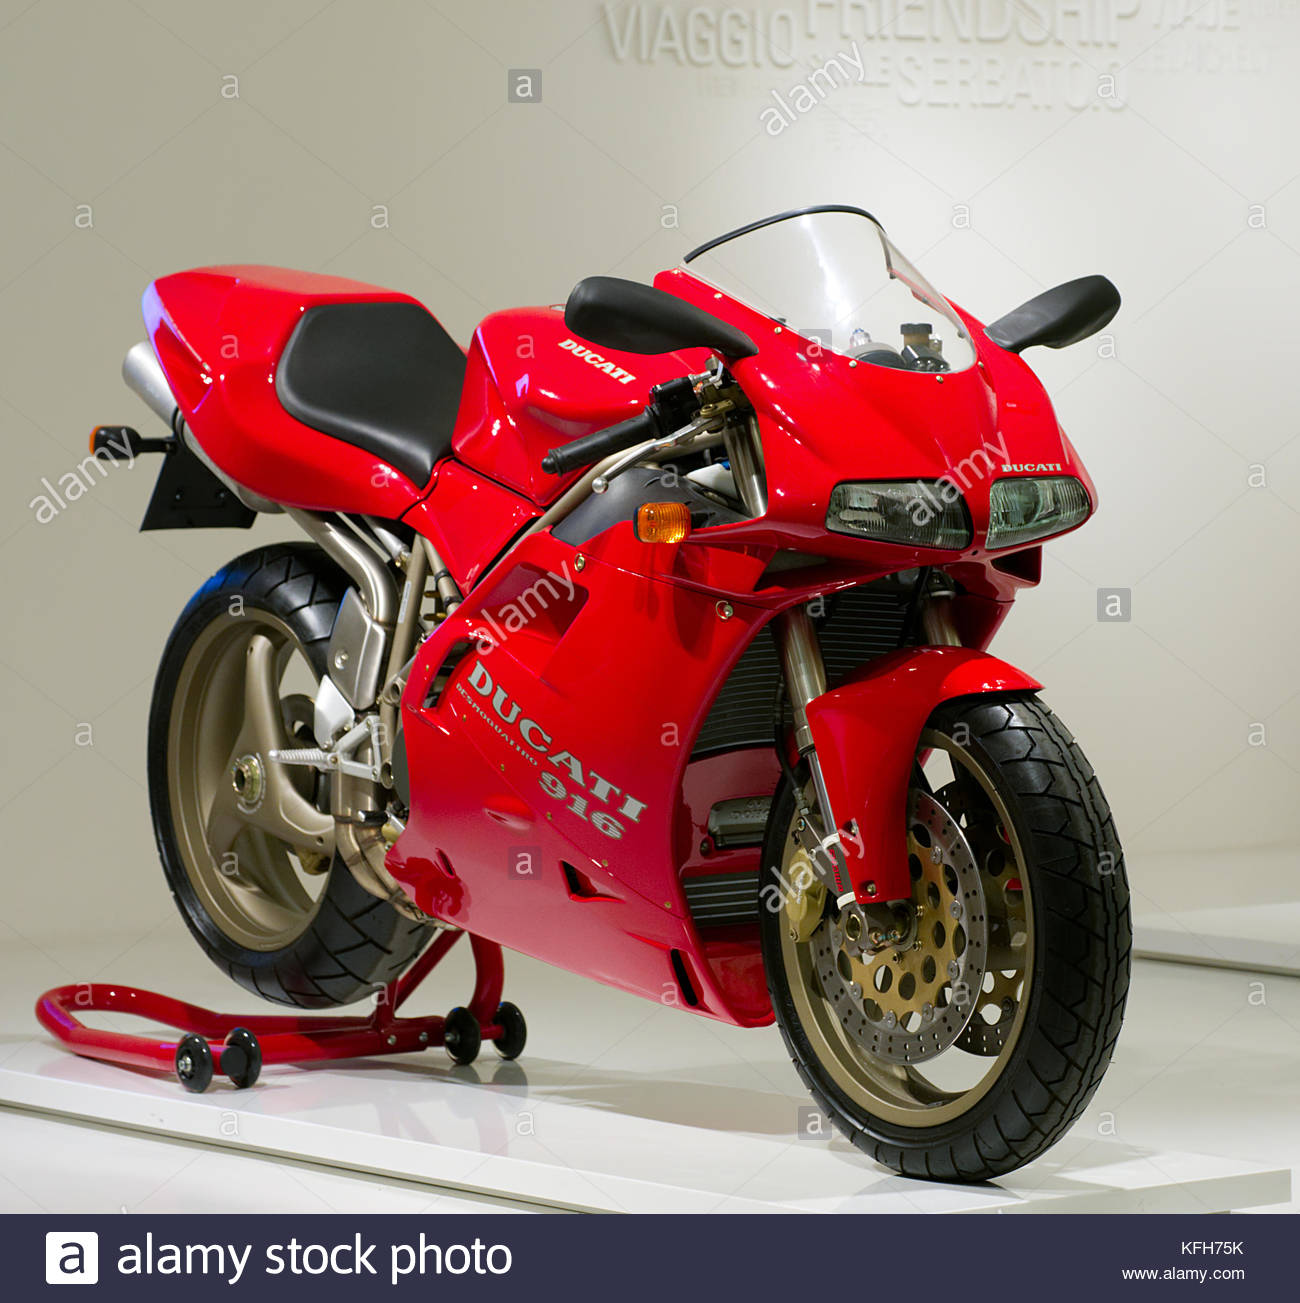 Ducati 916 Motorcycle on display at the Ducati Factory museum, Bologna  Italy.